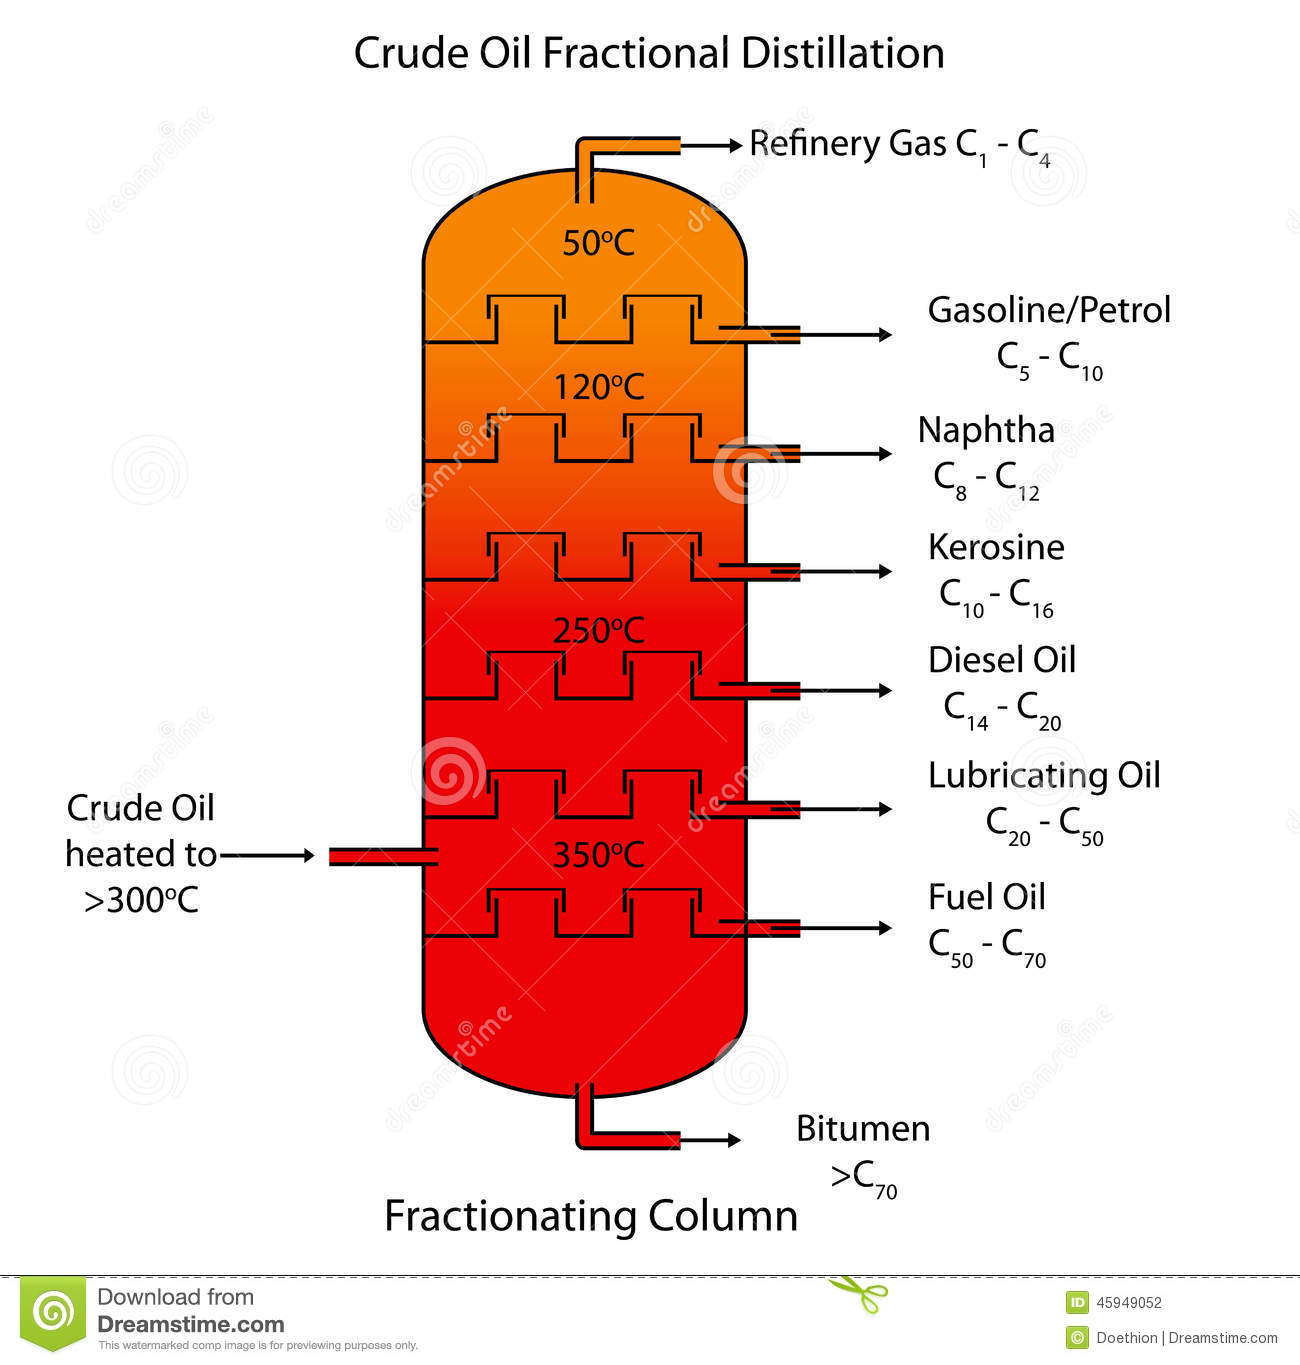 Crude stock illustrations 6440 crude stock illustrations fractional distillation of crude oil labeled diagram of crude oil fractional distillation stock photography biocorpaavc Gallery